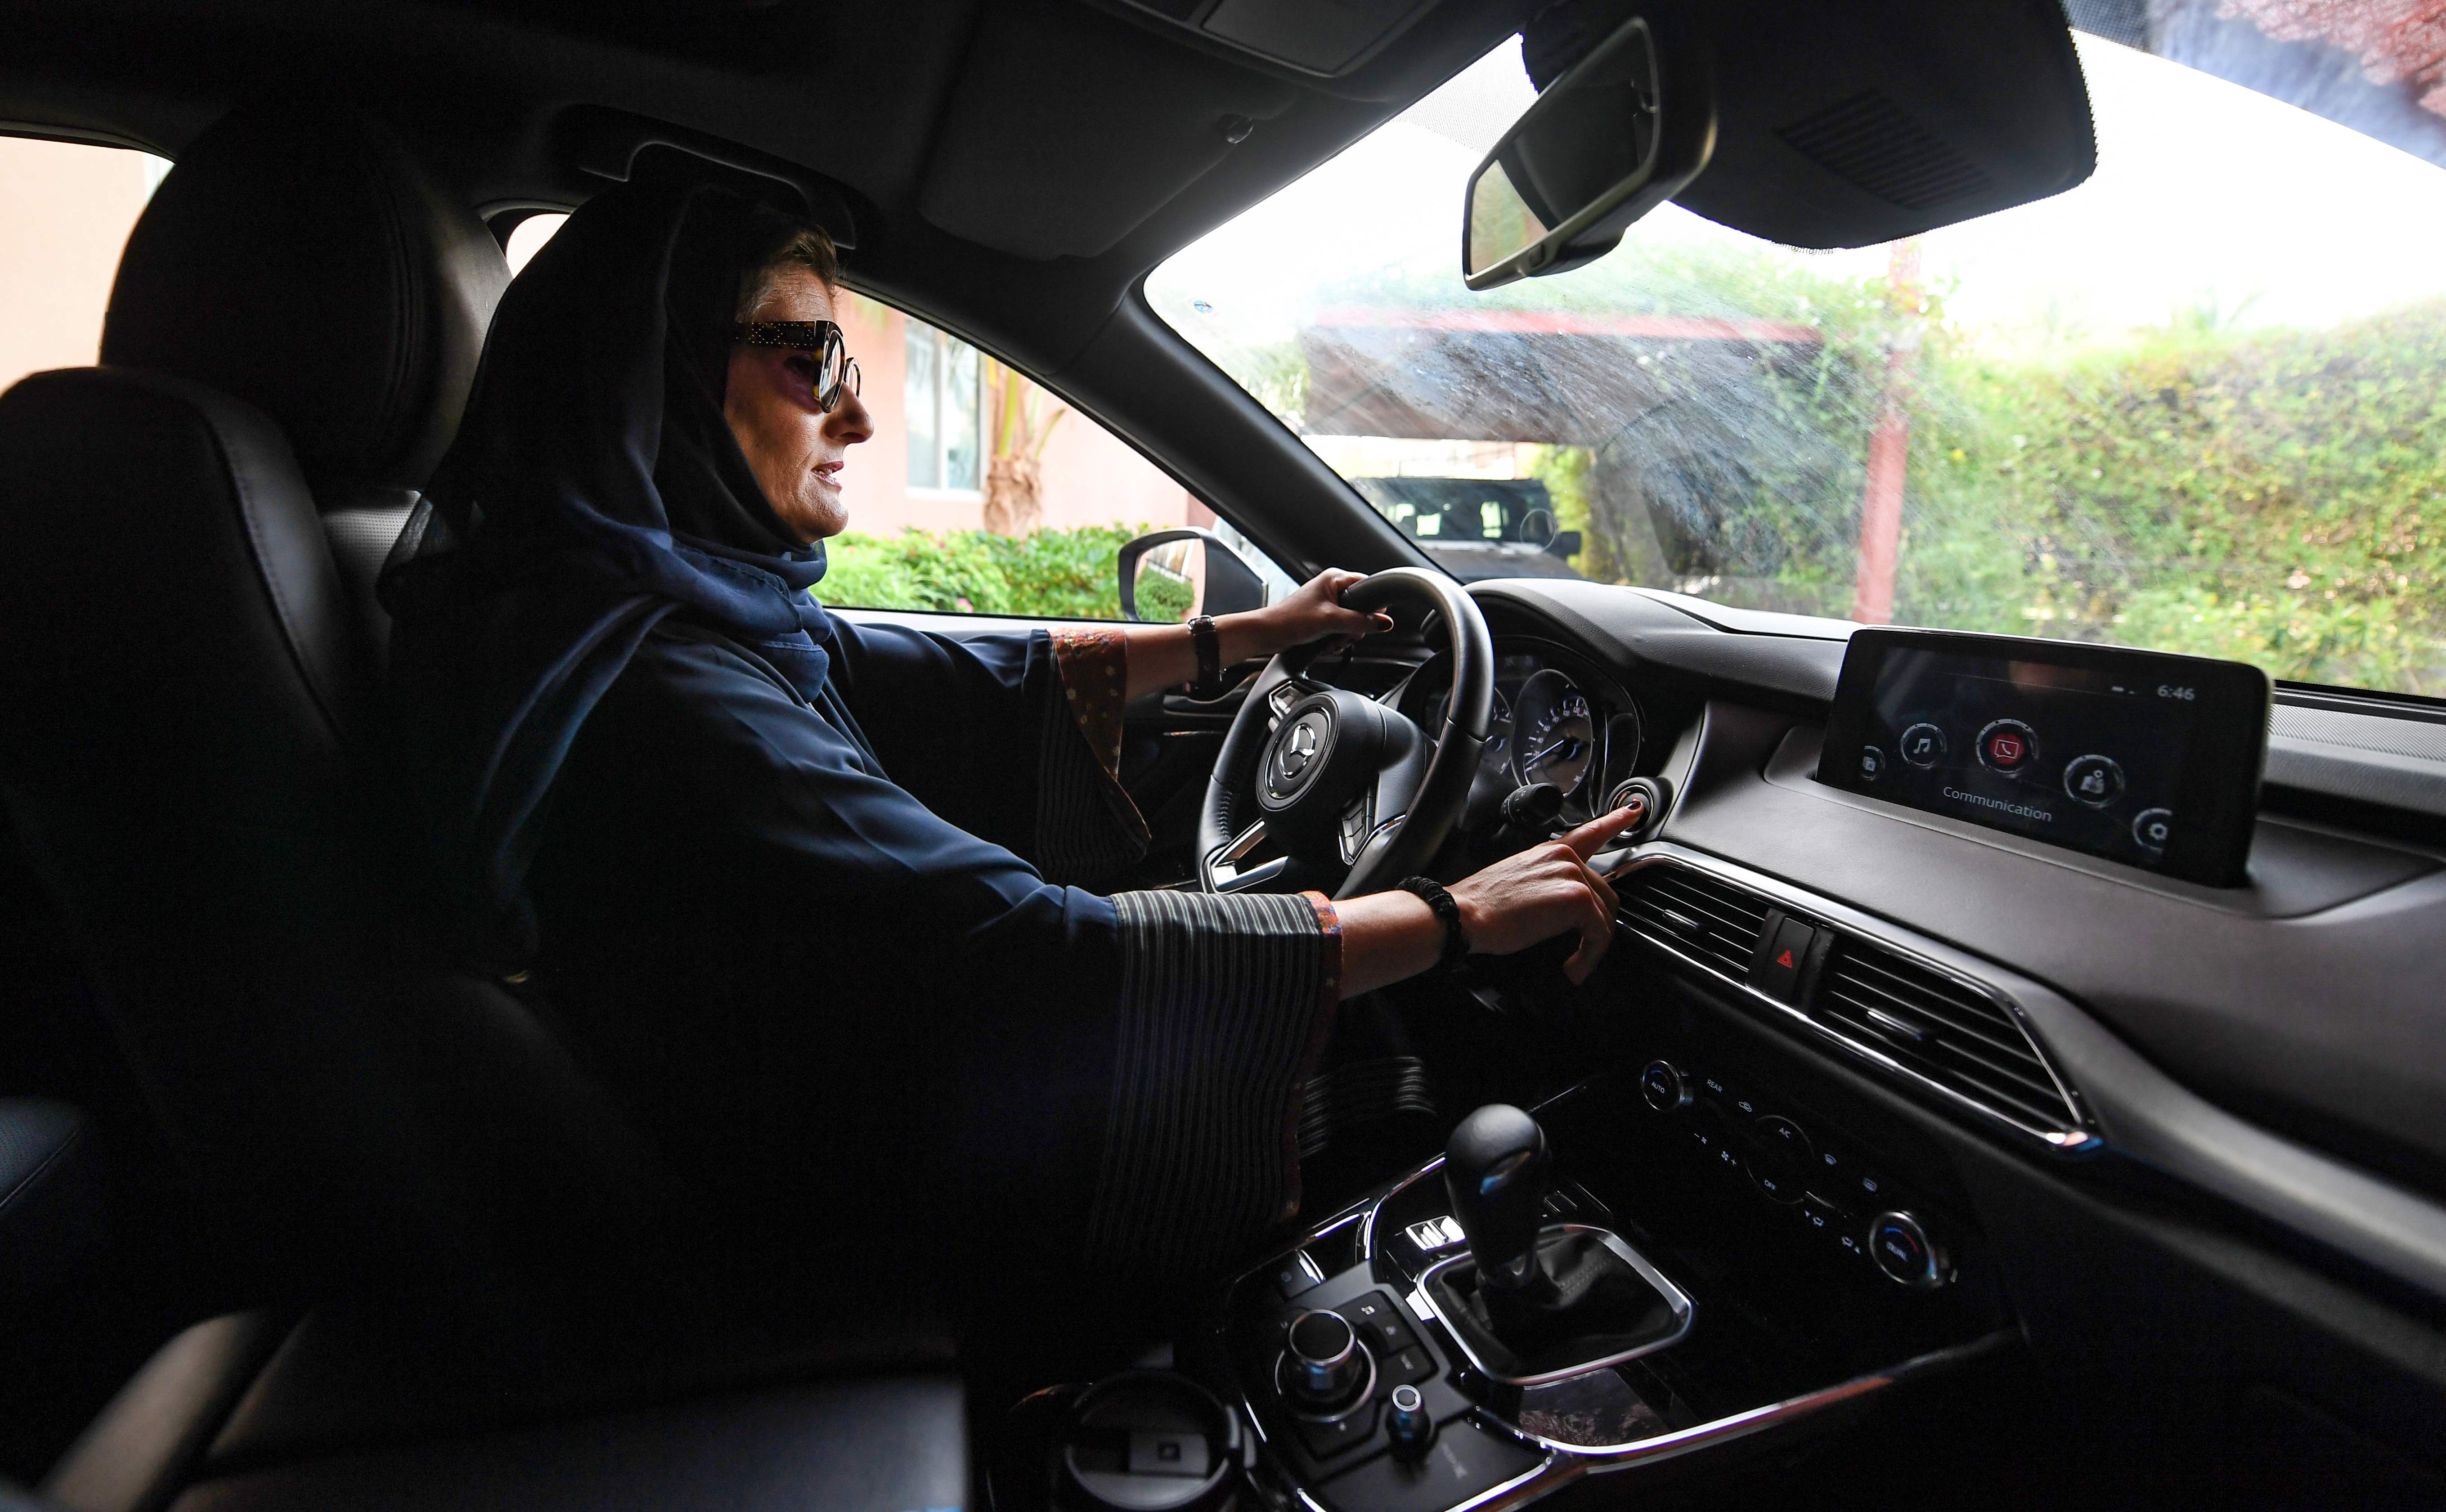 Halah Hussein Reda, a newly-licensed Saudi motorist, drives a car in the Red Sea coastal city of Jeddah early on June 24, 2018.  Saudi Arabia ended its longstanding ban on women driving on June 24, 2018 -- and the second the clock struck midnight, wom